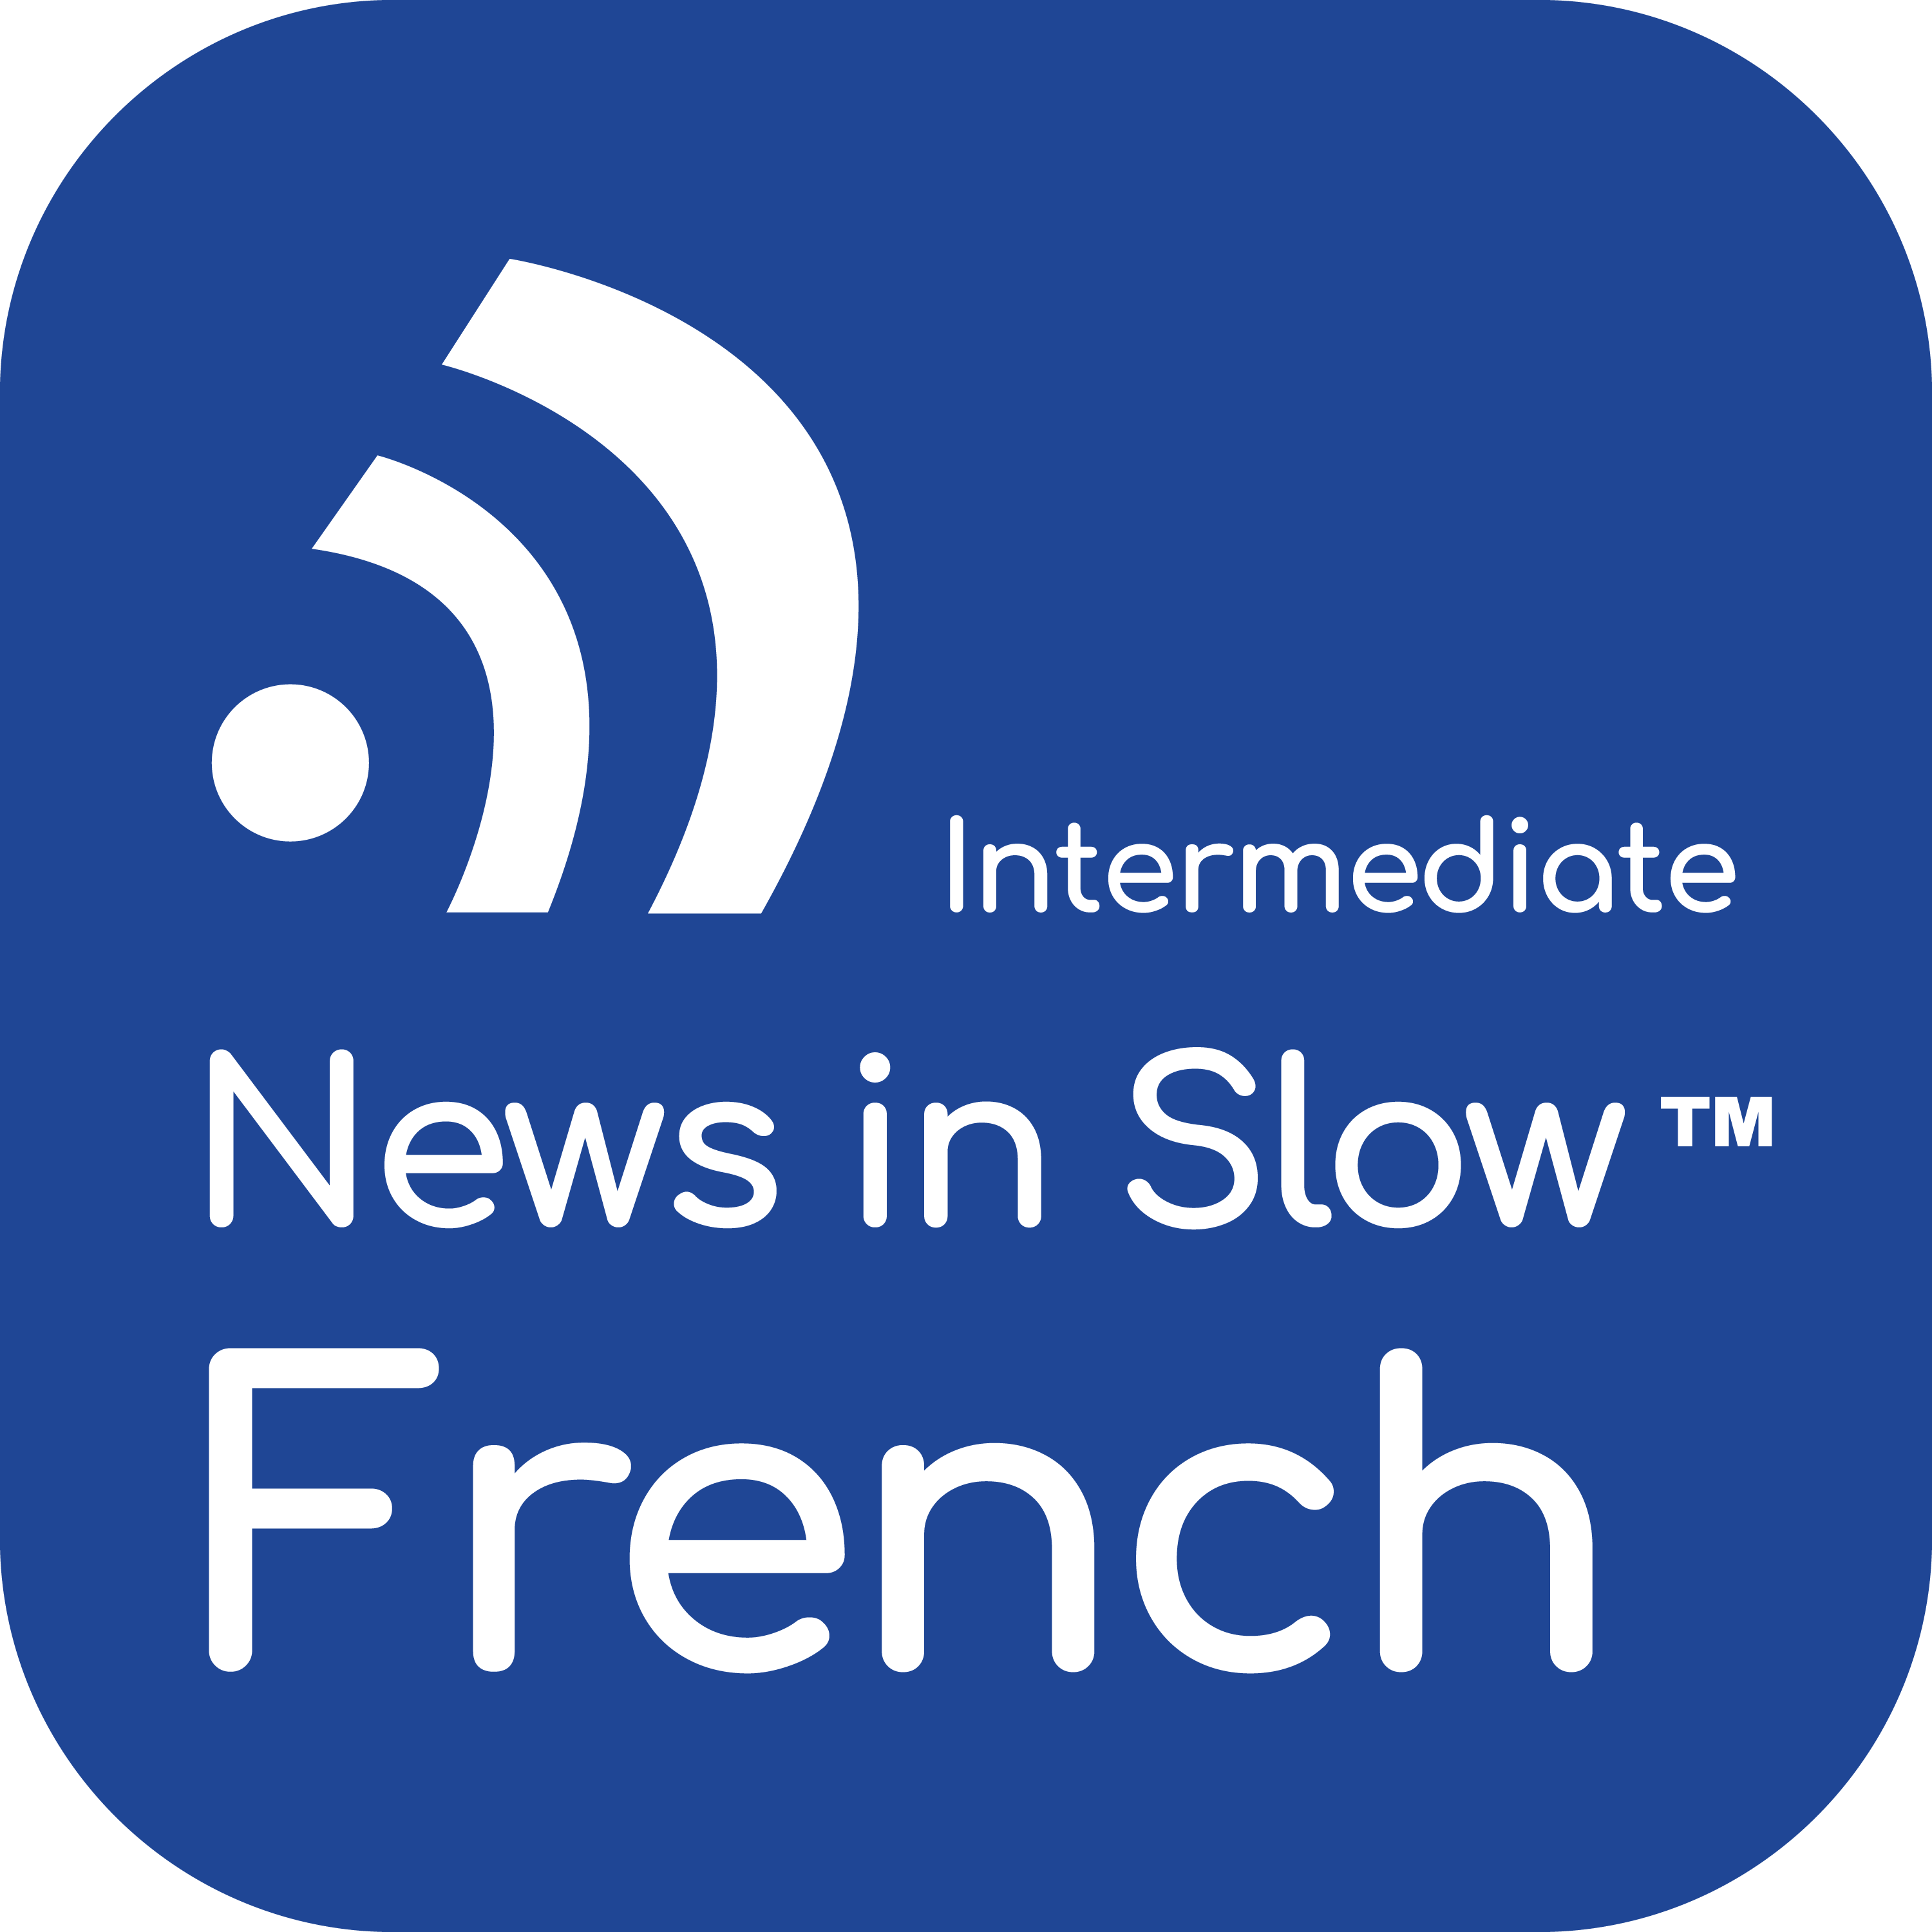 News in Slow French #499 - French Expressions, News and Grammar